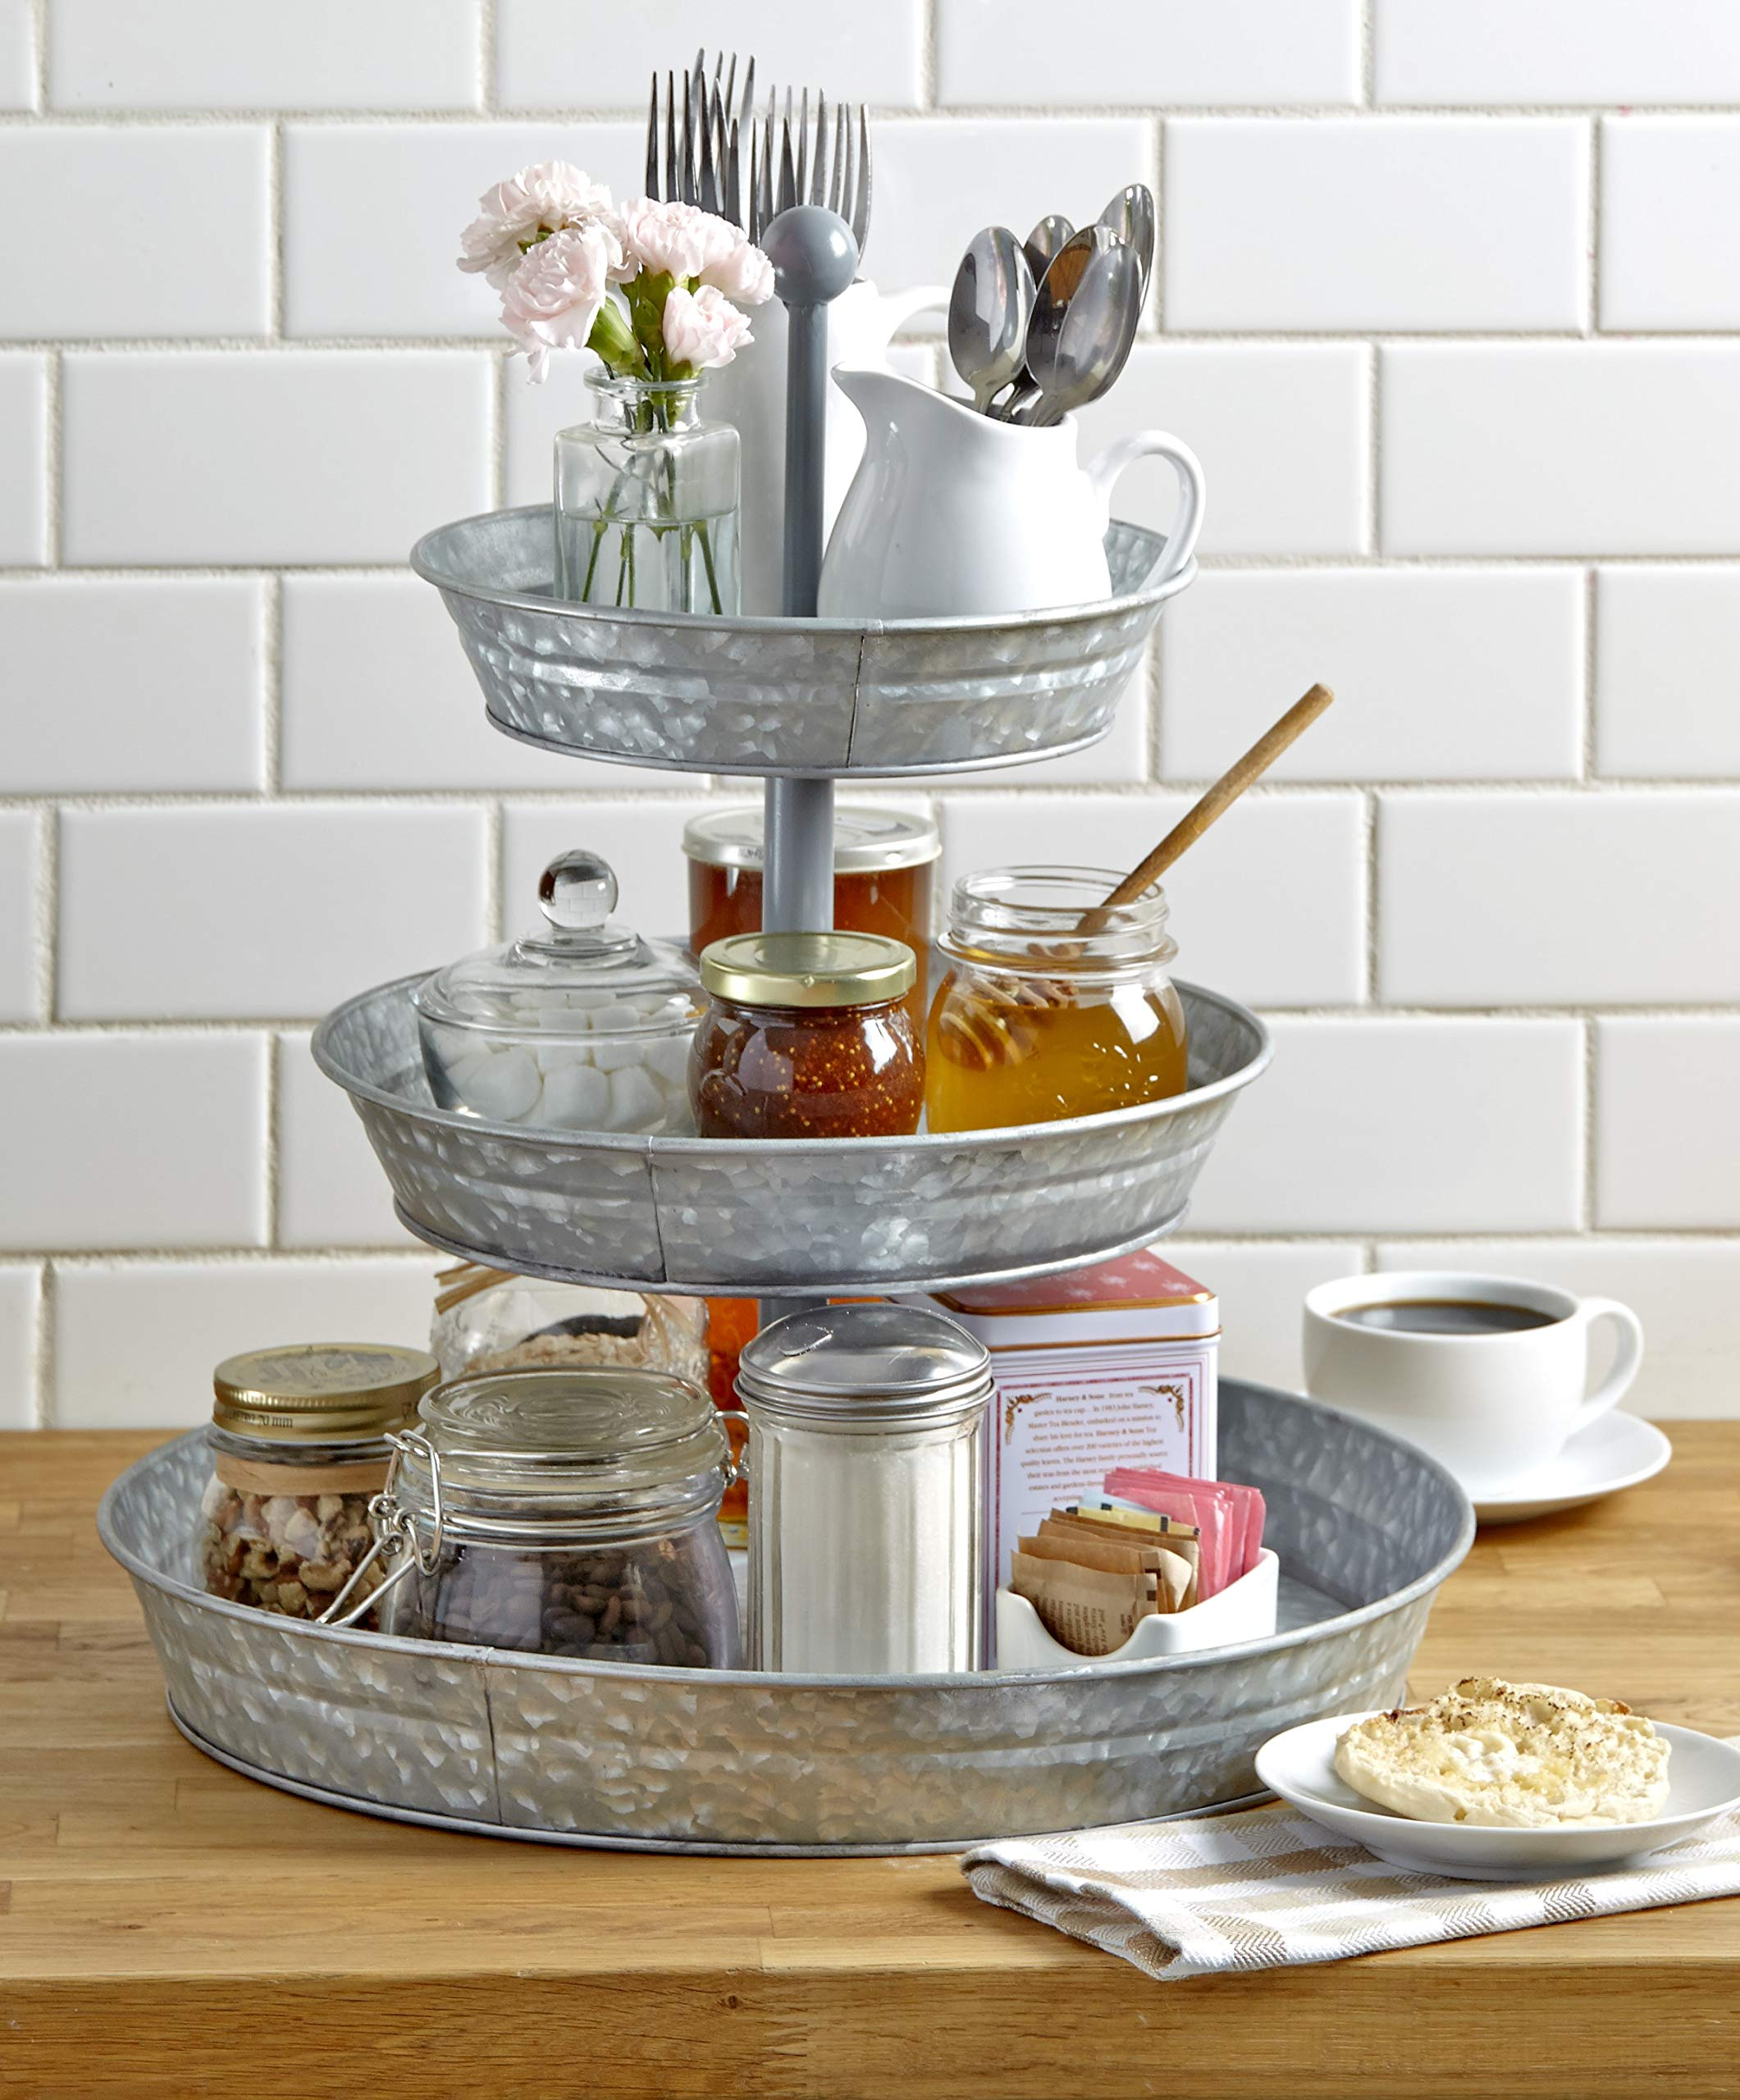 GetSet2Save BM164575 Vintage Galvanized 3 Tier Serving Tray Rustic Country Farmhouse Kitchen, one size, Silver by GetSet2Save